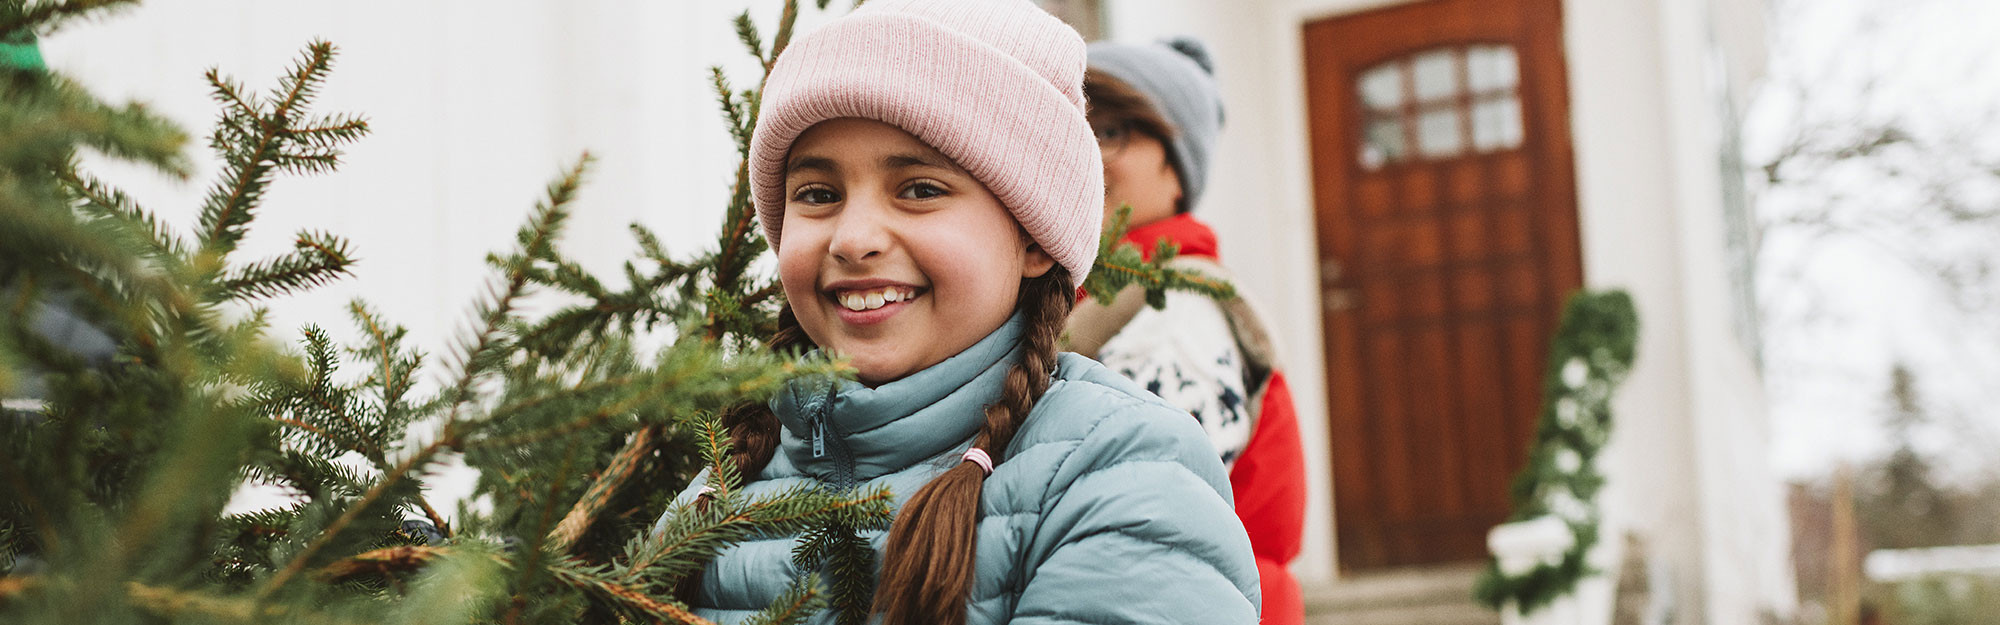 Girl outdoors carrying a christmas tree.